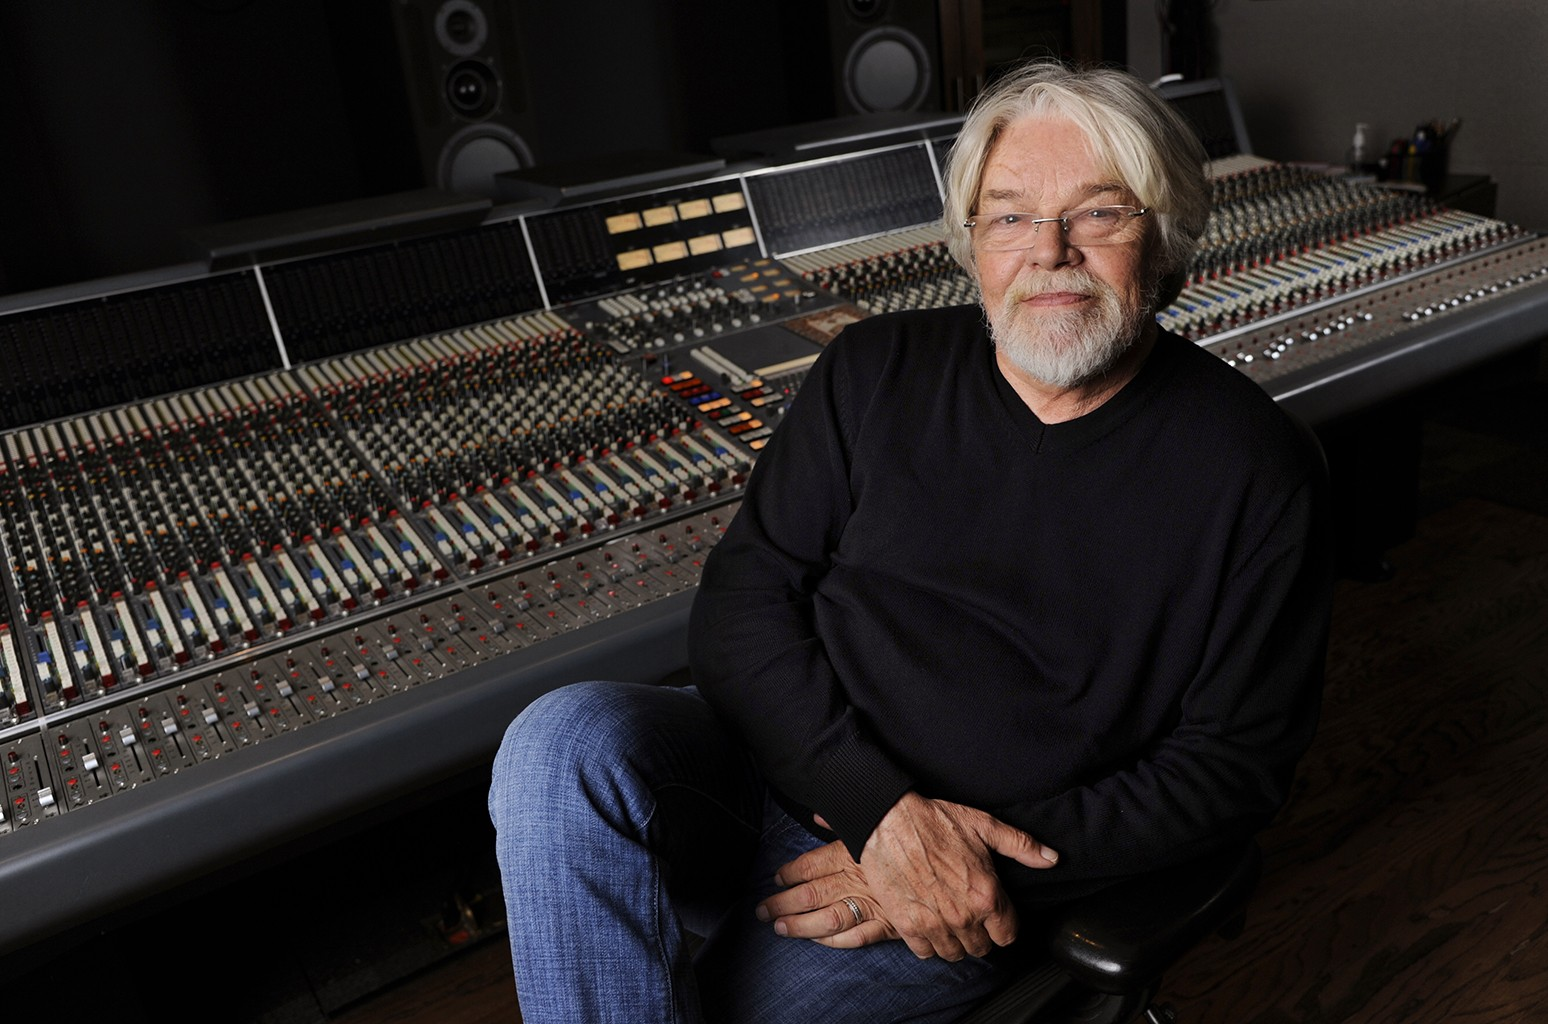 Bob Seger photographed in a Capitol Records studio on Oct. 16, 2014 in Los Angeles.